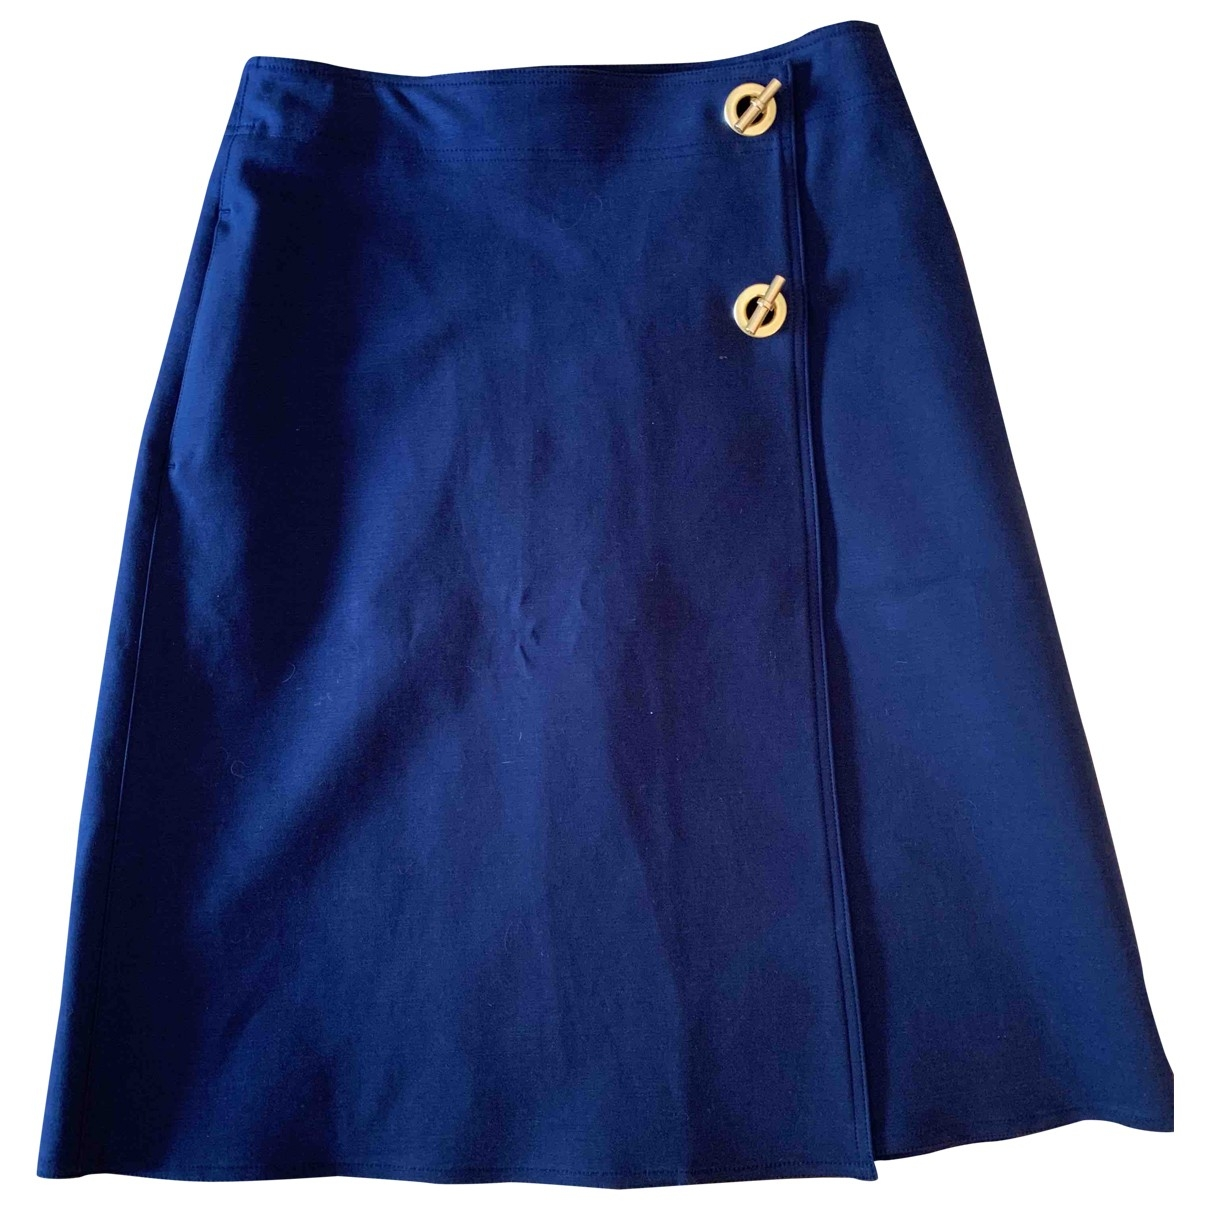 Tory Burch \N Navy Cotton - elasthane skirt for Women 6 US